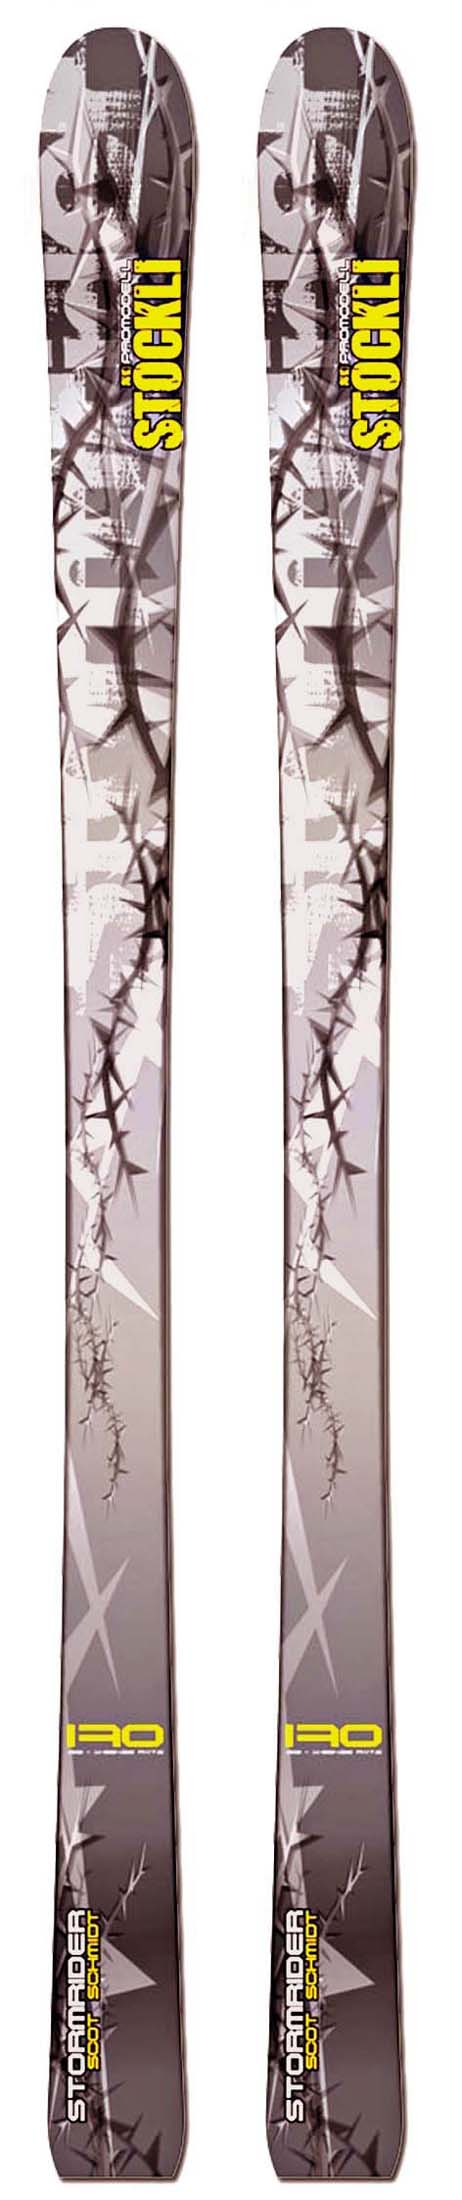 Stockli 2011 Scot Schmidt Pro Skis (No Bindings / Flat) NEW !!  176cm